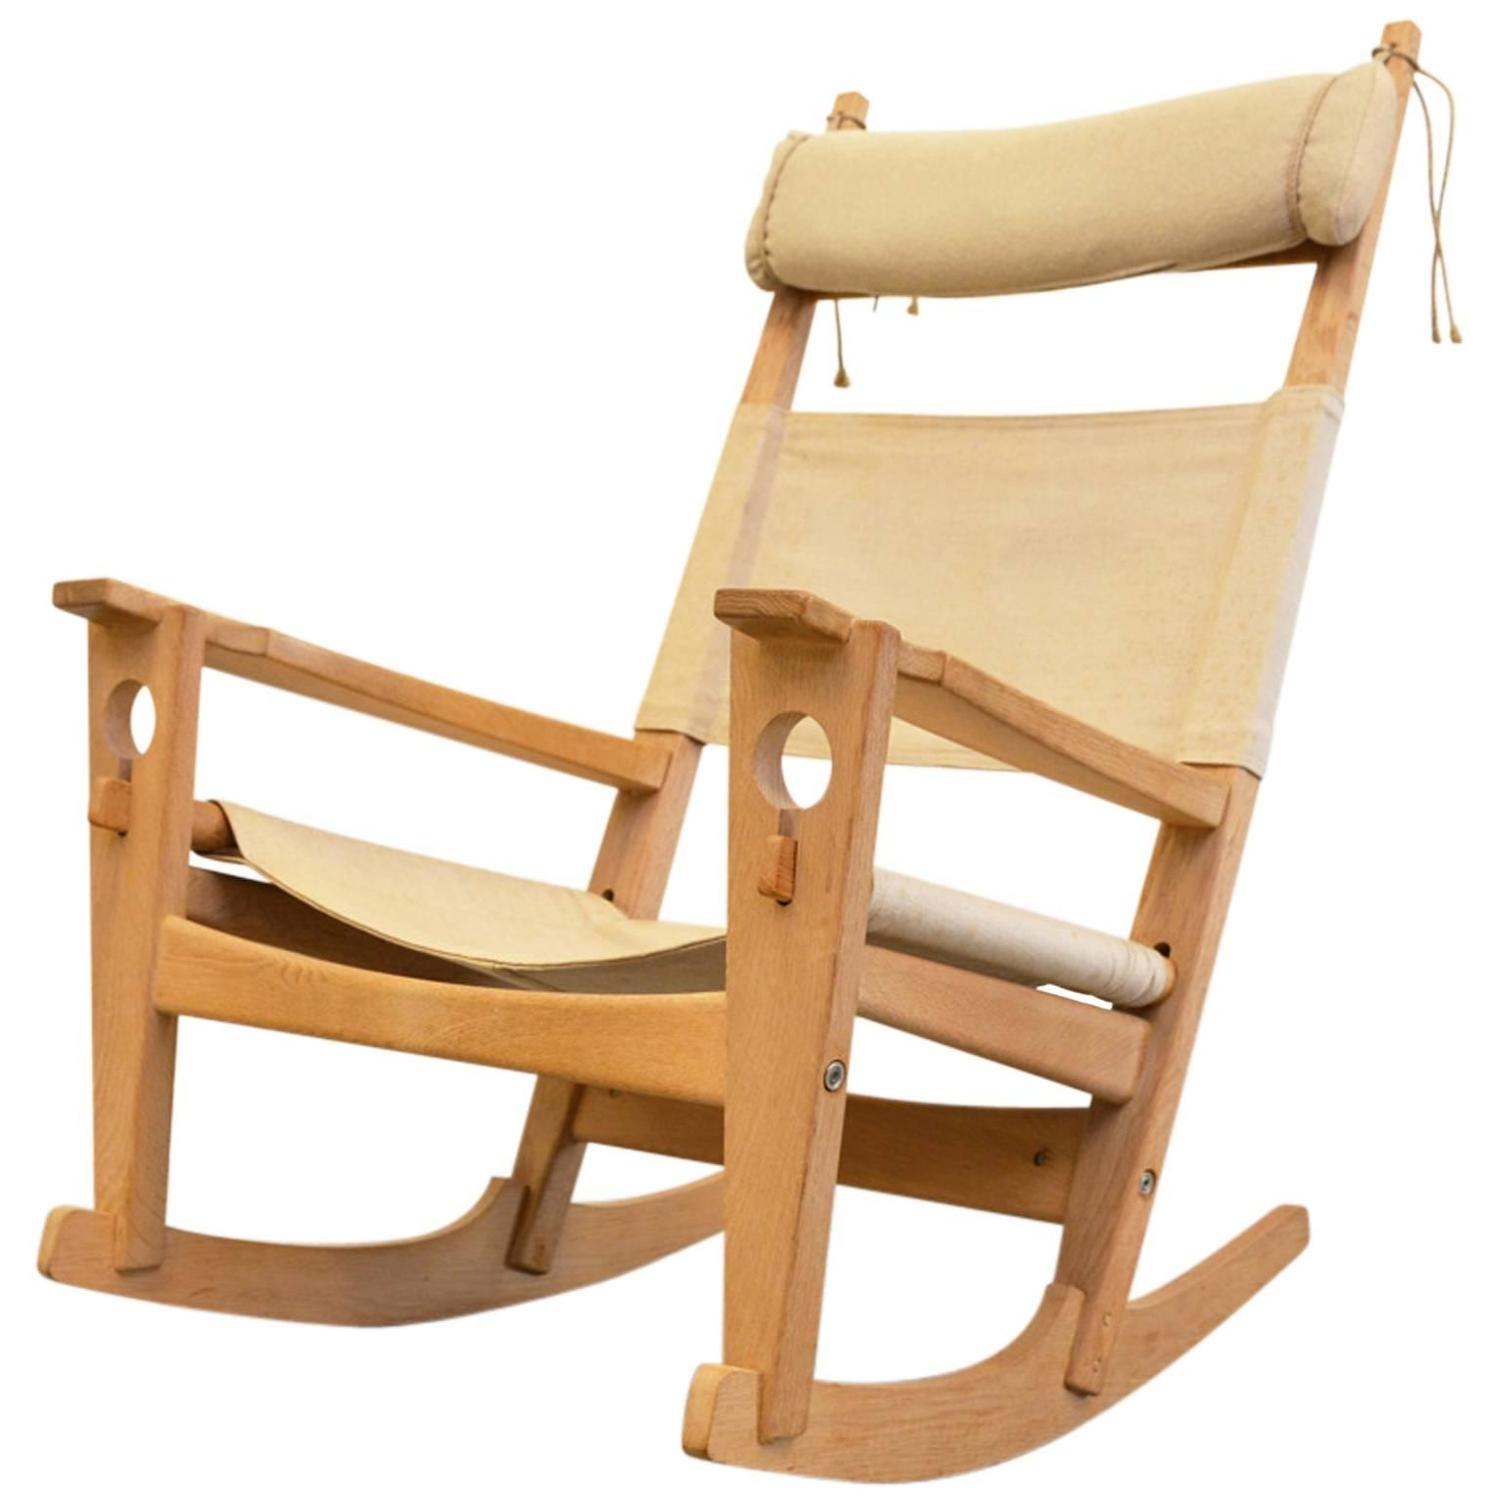 Wonderful image of Keyhole Rocking Chair by Hans Wegner For Sale at 1stdibs with #4A260A color and 1500x1500 pixels